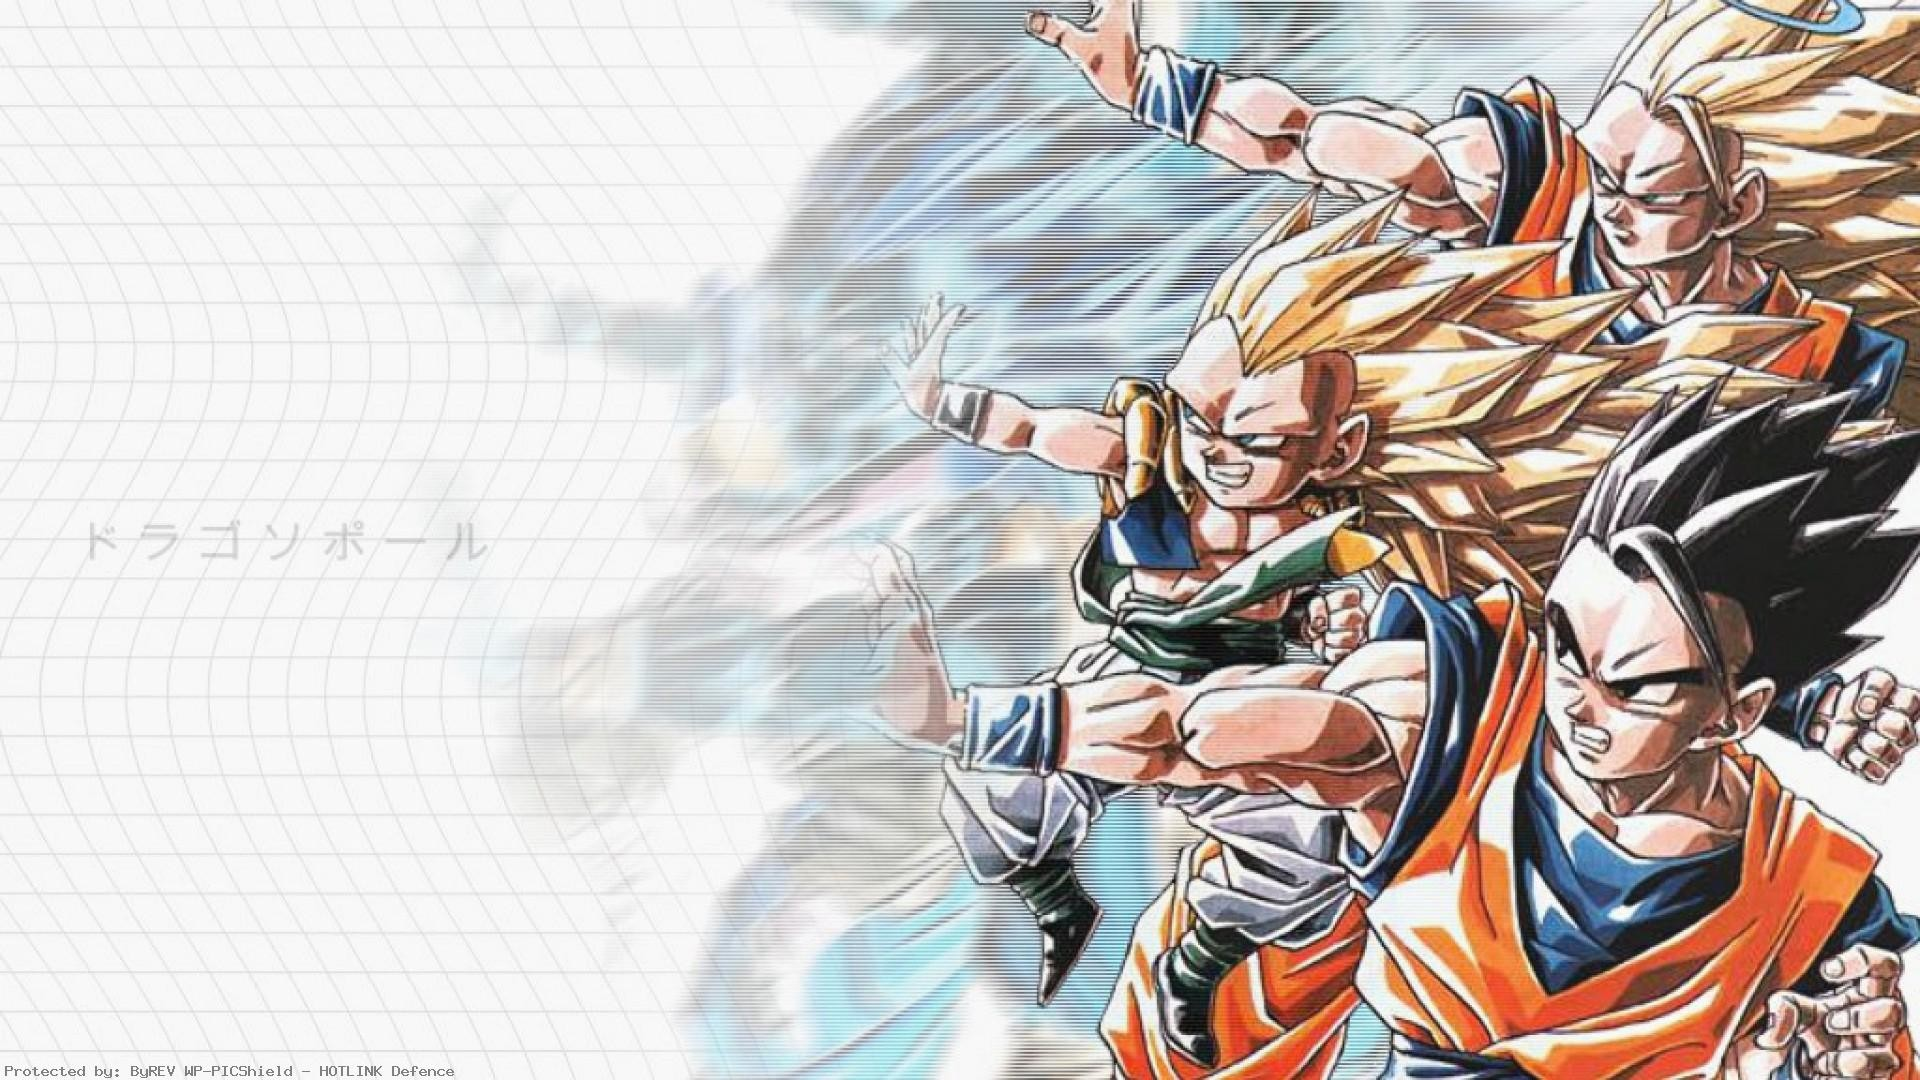 Dragon-Ball-Z-HD-and-Backgrounds-1920%C3%